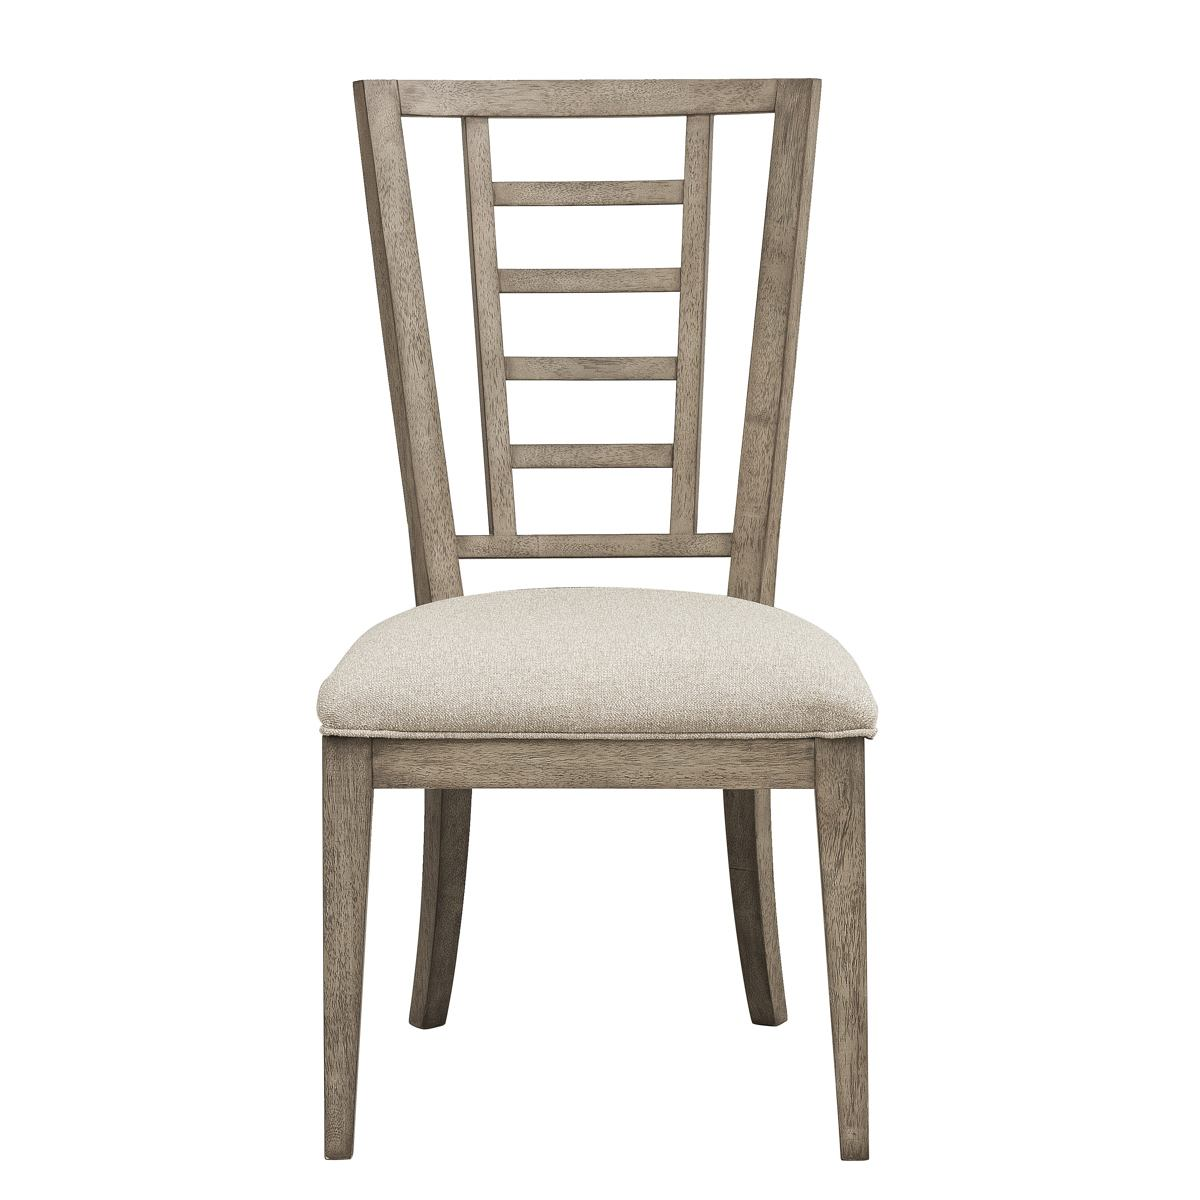 Pulaski Academy Upholstered Ladderback Dining Chair (Set of 2) P083260